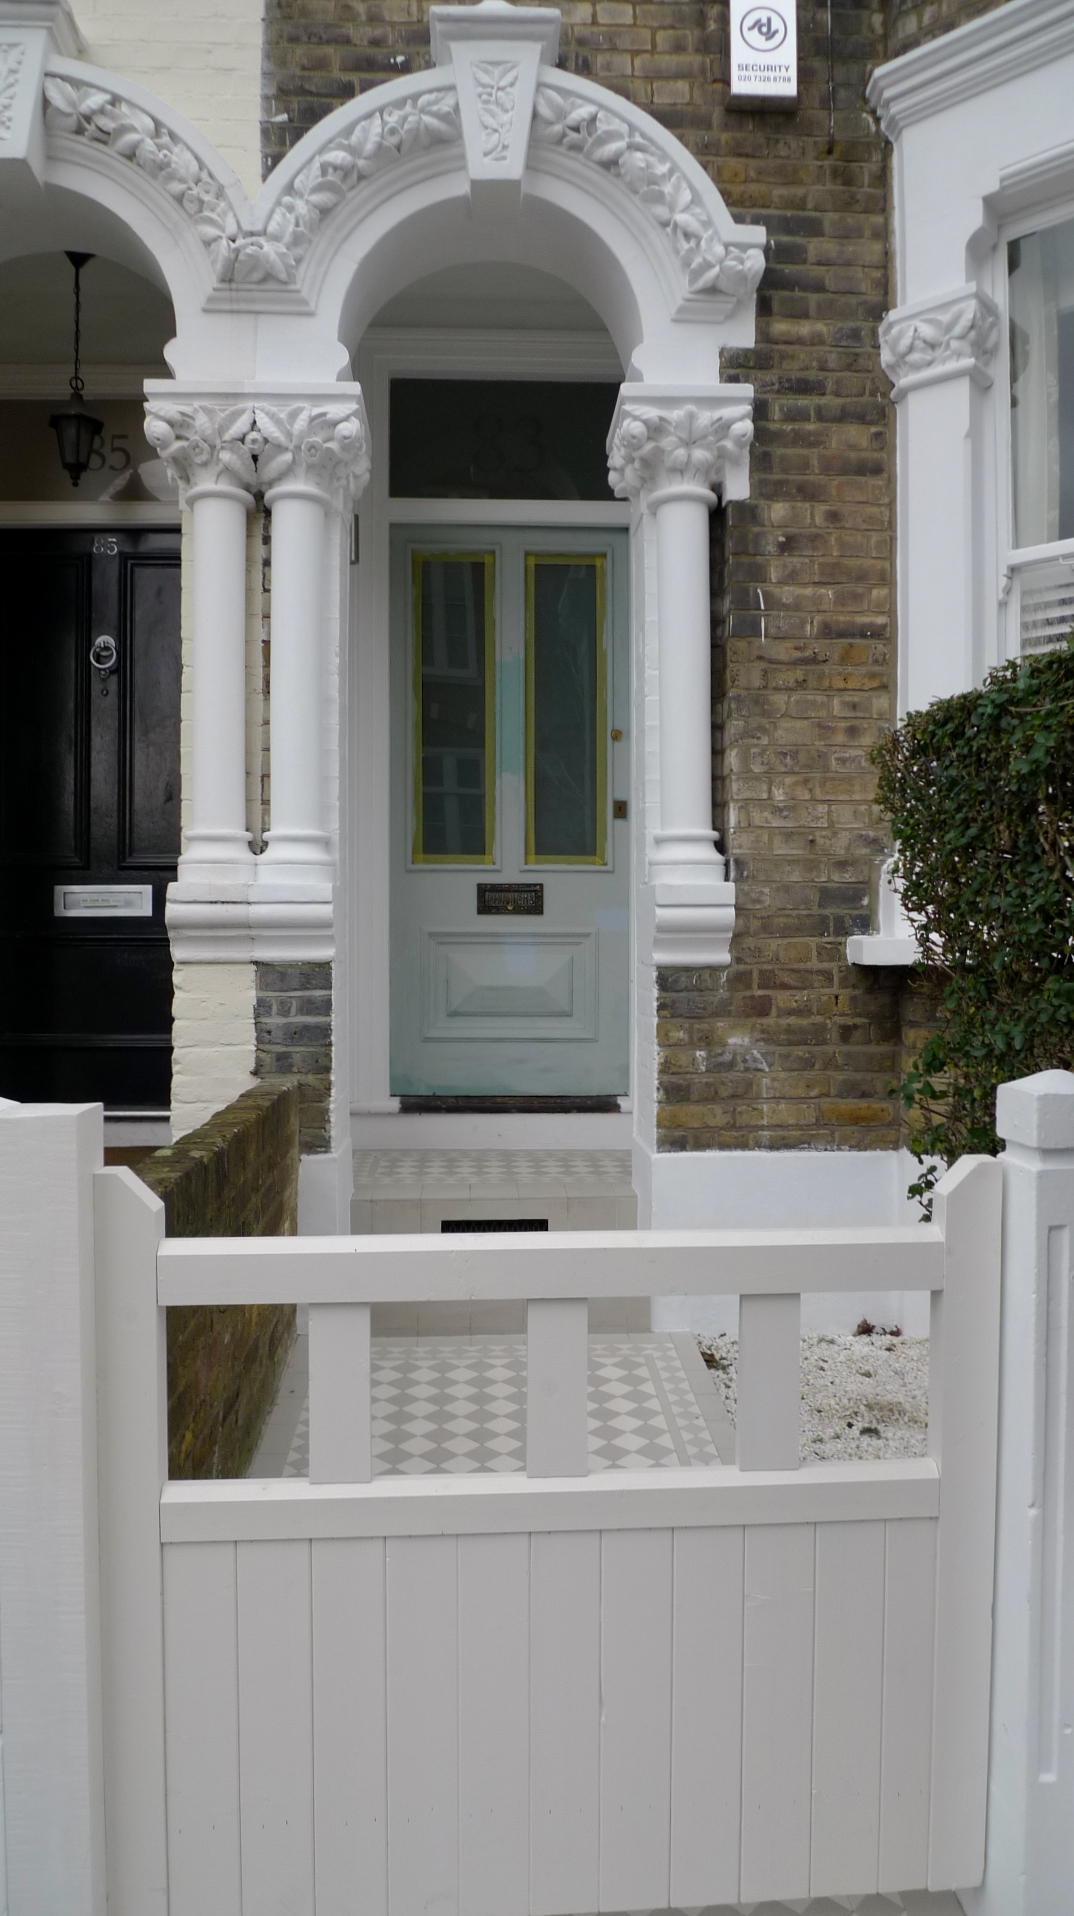 off white london front garden gate york stone and grey and white mosaic tile path